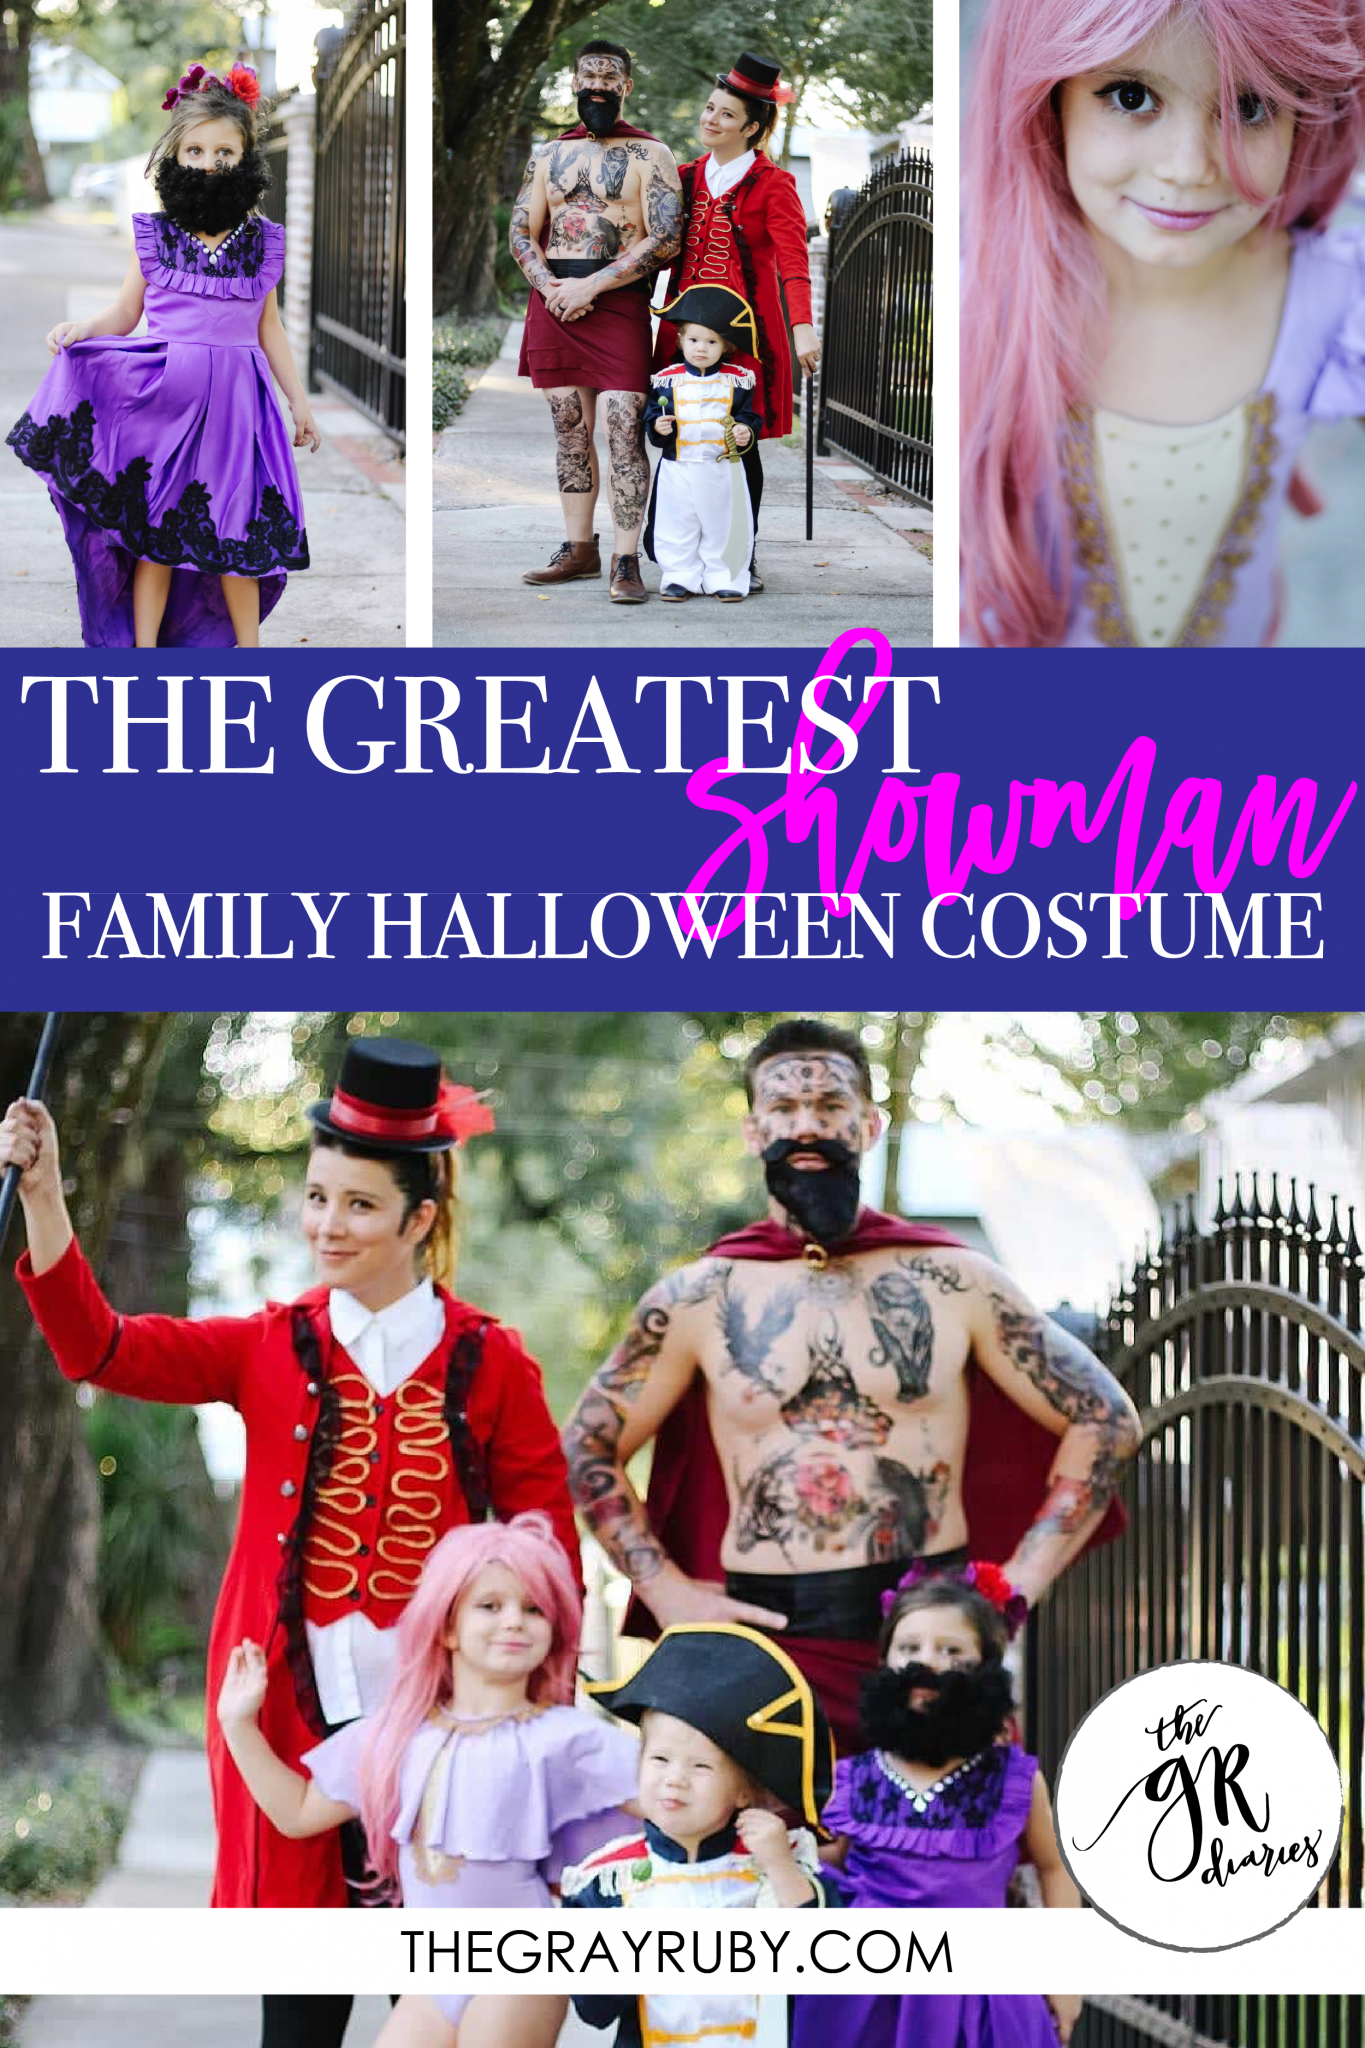 The Greatest Showman Halloween Costume